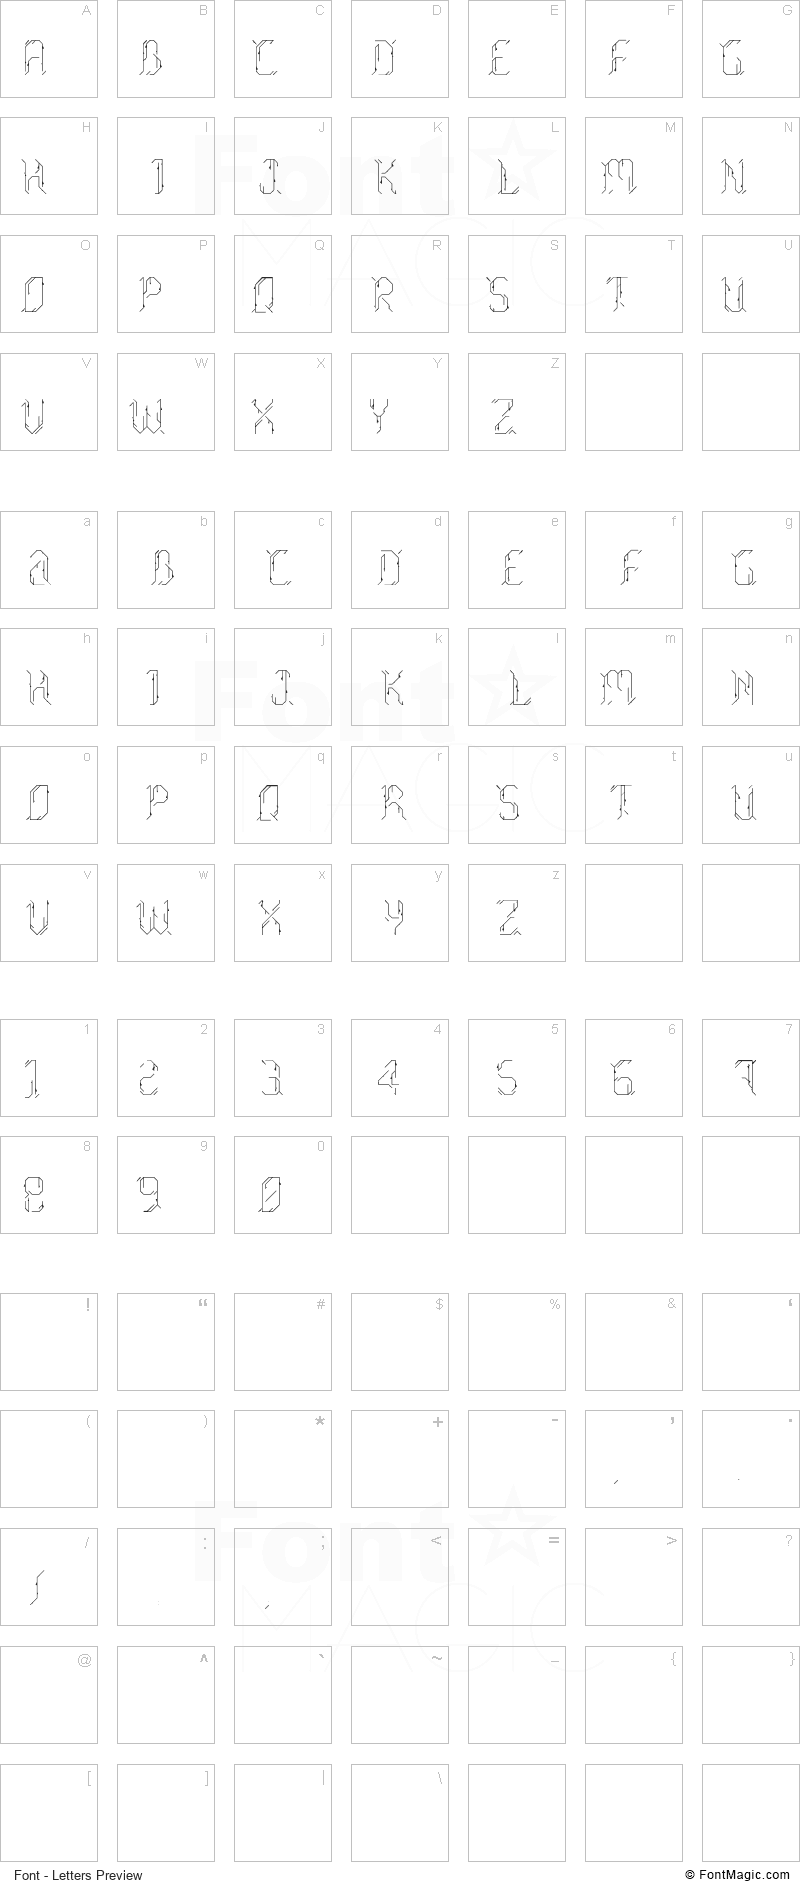 Morgenstern Font - All Latters Preview Chart